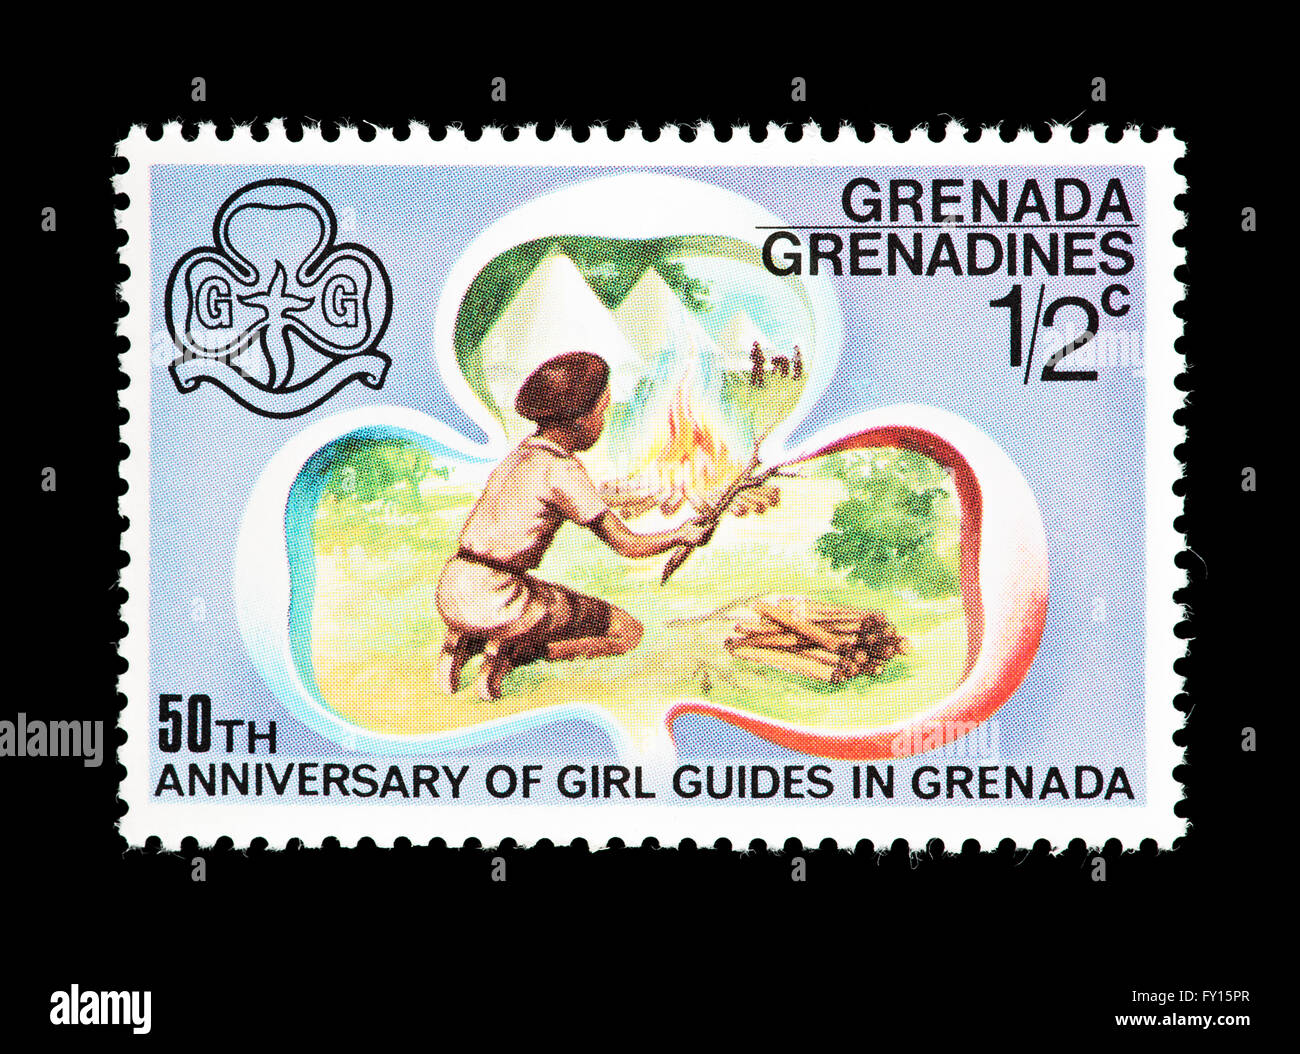 Postage Stamp From Grenada Grenadines Depicting Girl Guides And Symbols Issued For The 50th Anniversary Of